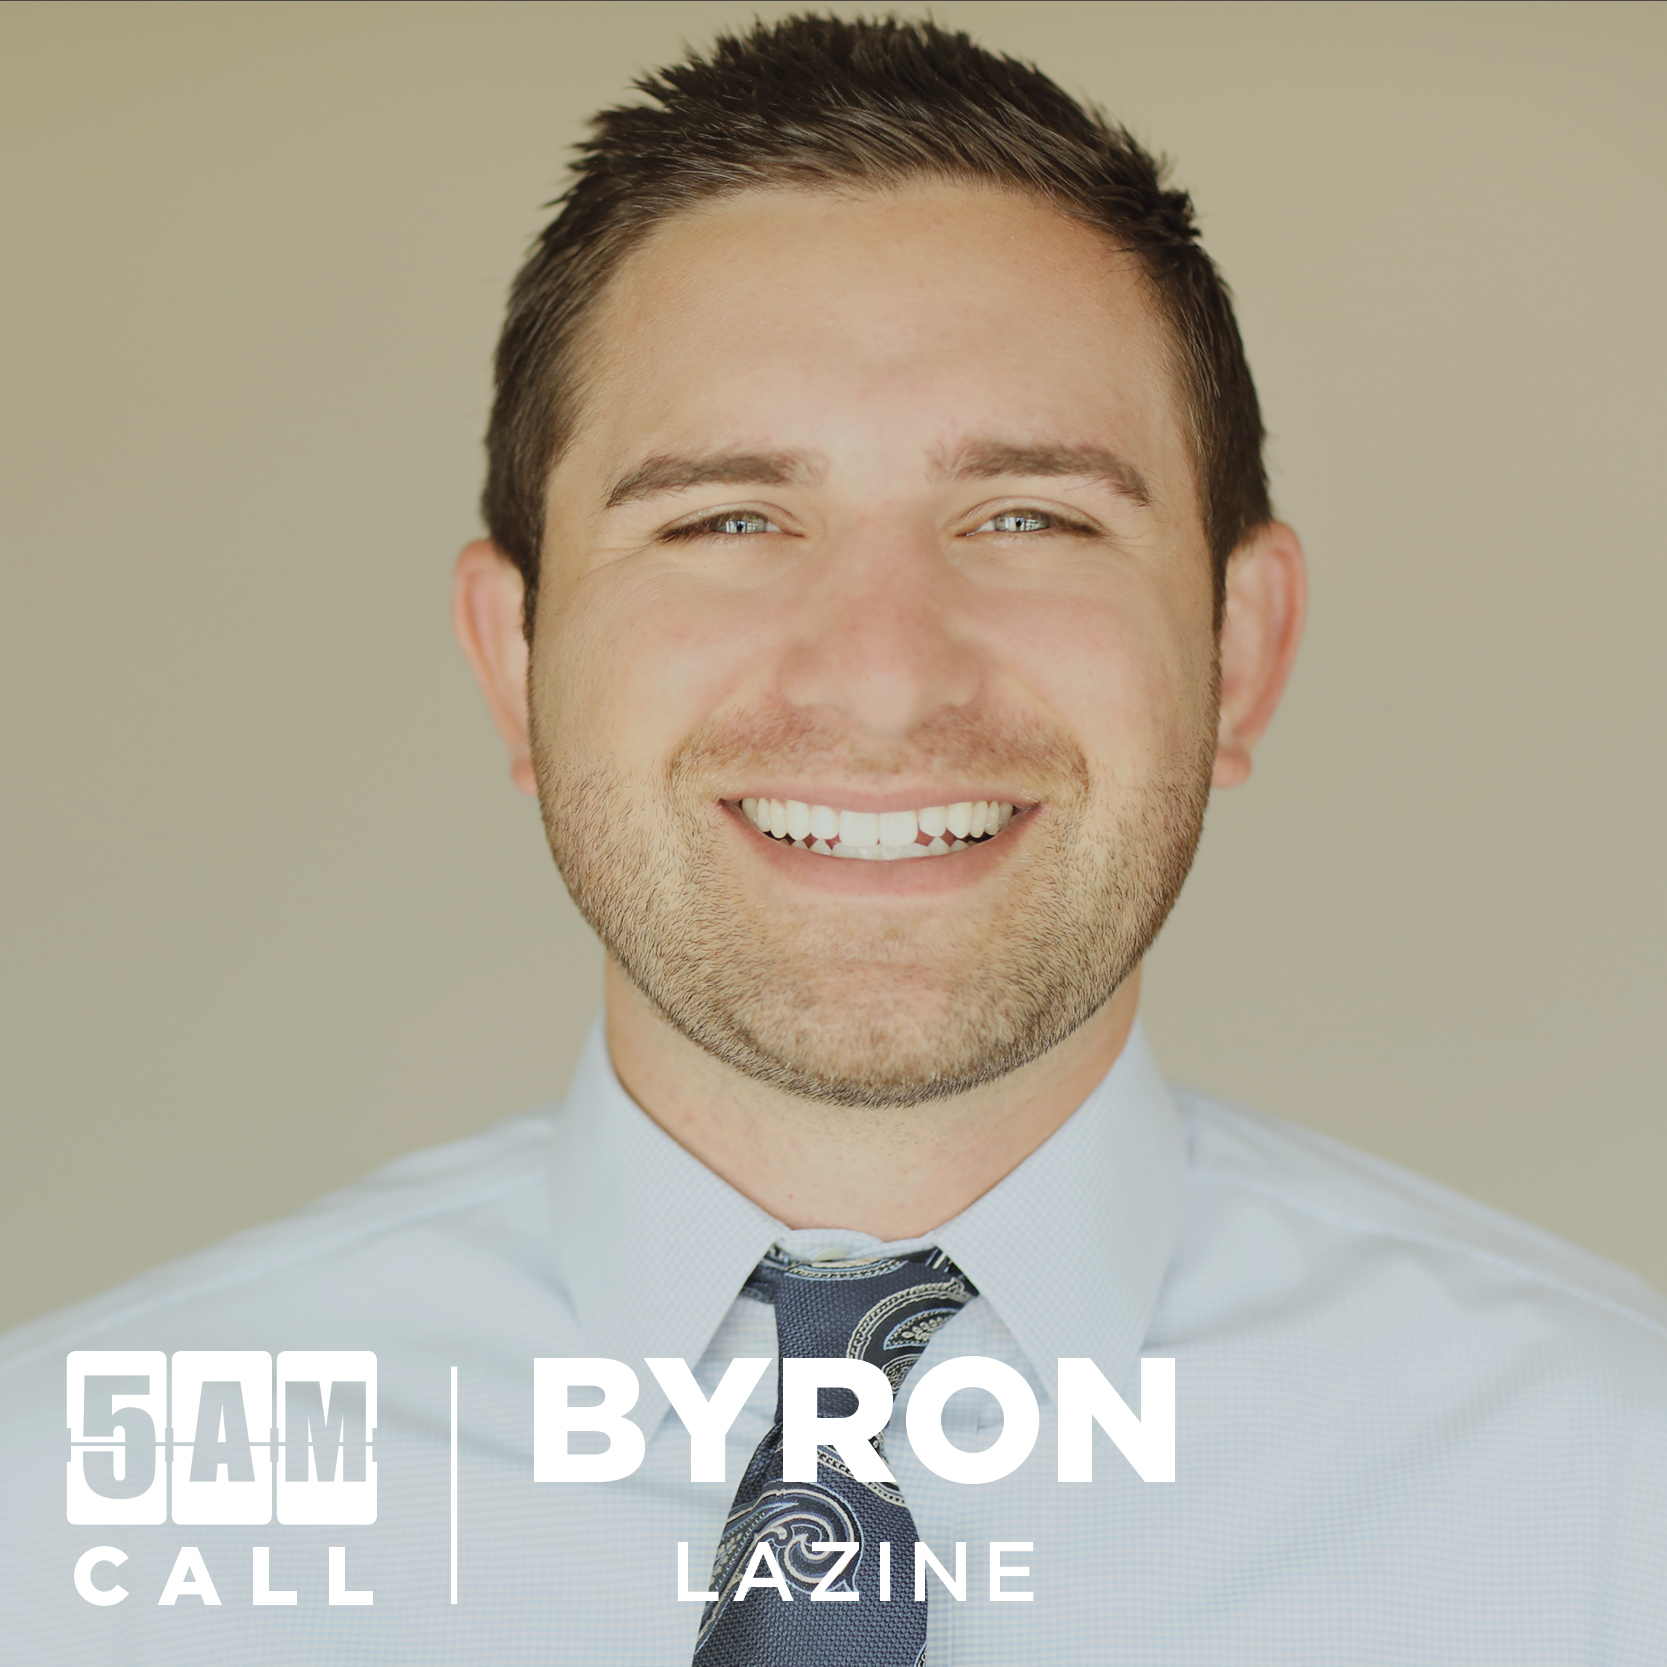 As an entrepreneur, Byron has an aggressive marketing approach, strategic business operations, and passion for results. Byron is a team lead for the William Raveis real estate team One + Company, servicing the Connecticut shoreline. In addition to his work as a broker and agent, Byron co-hosts The Real Word, is the CEO of the digital marketing agency Company Cubed, and speaks at real estate venues throughout the country. -